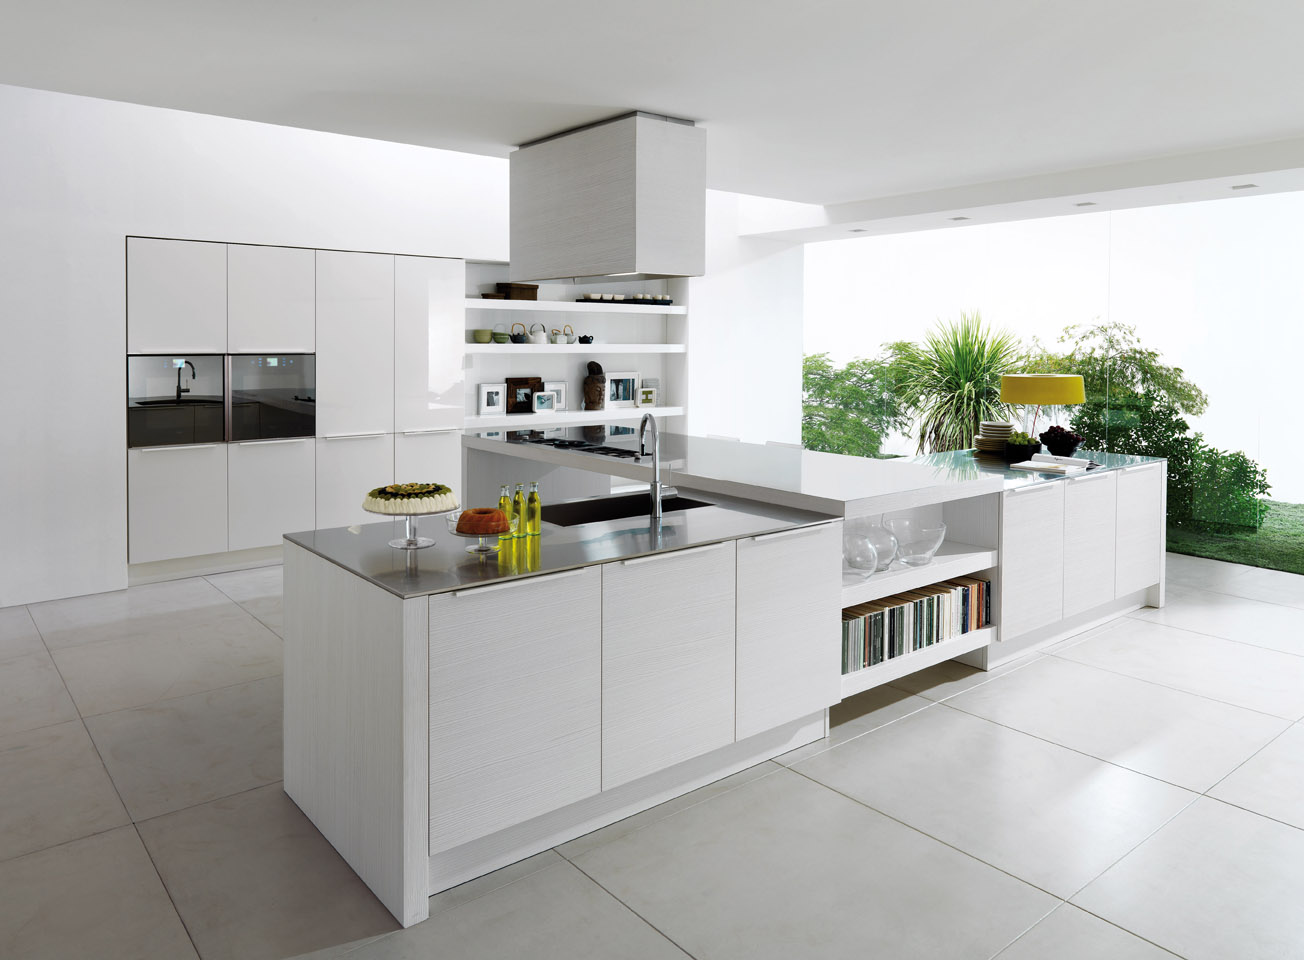 Remarkable White Modern Kitchen Design Ideas 1304 x 960 · 183 kB · jpeg